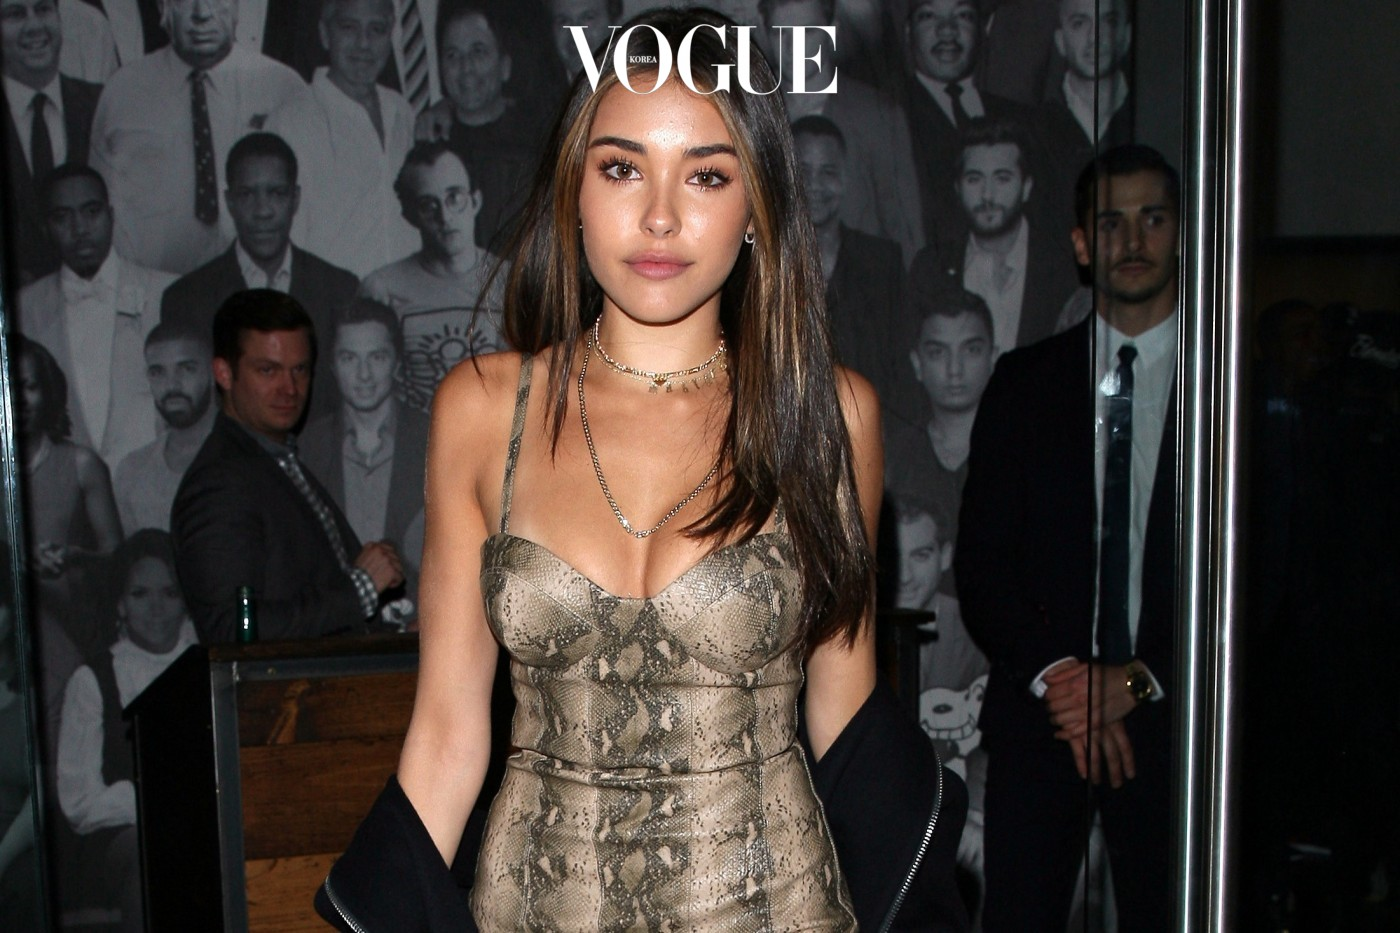 Madison Beer shows off her snake skin dress as she dines at Catch restaurant in West Hollywood.  Pictured: Madison Beer Ref: SPL1422726  140117   Picture by: Photographer Group / Splash News  Splash News and Pictures Los Angeles:	310-821-2666 New York:	212-619-2666 London:	870-934-2666 photodesk@splashnews.com